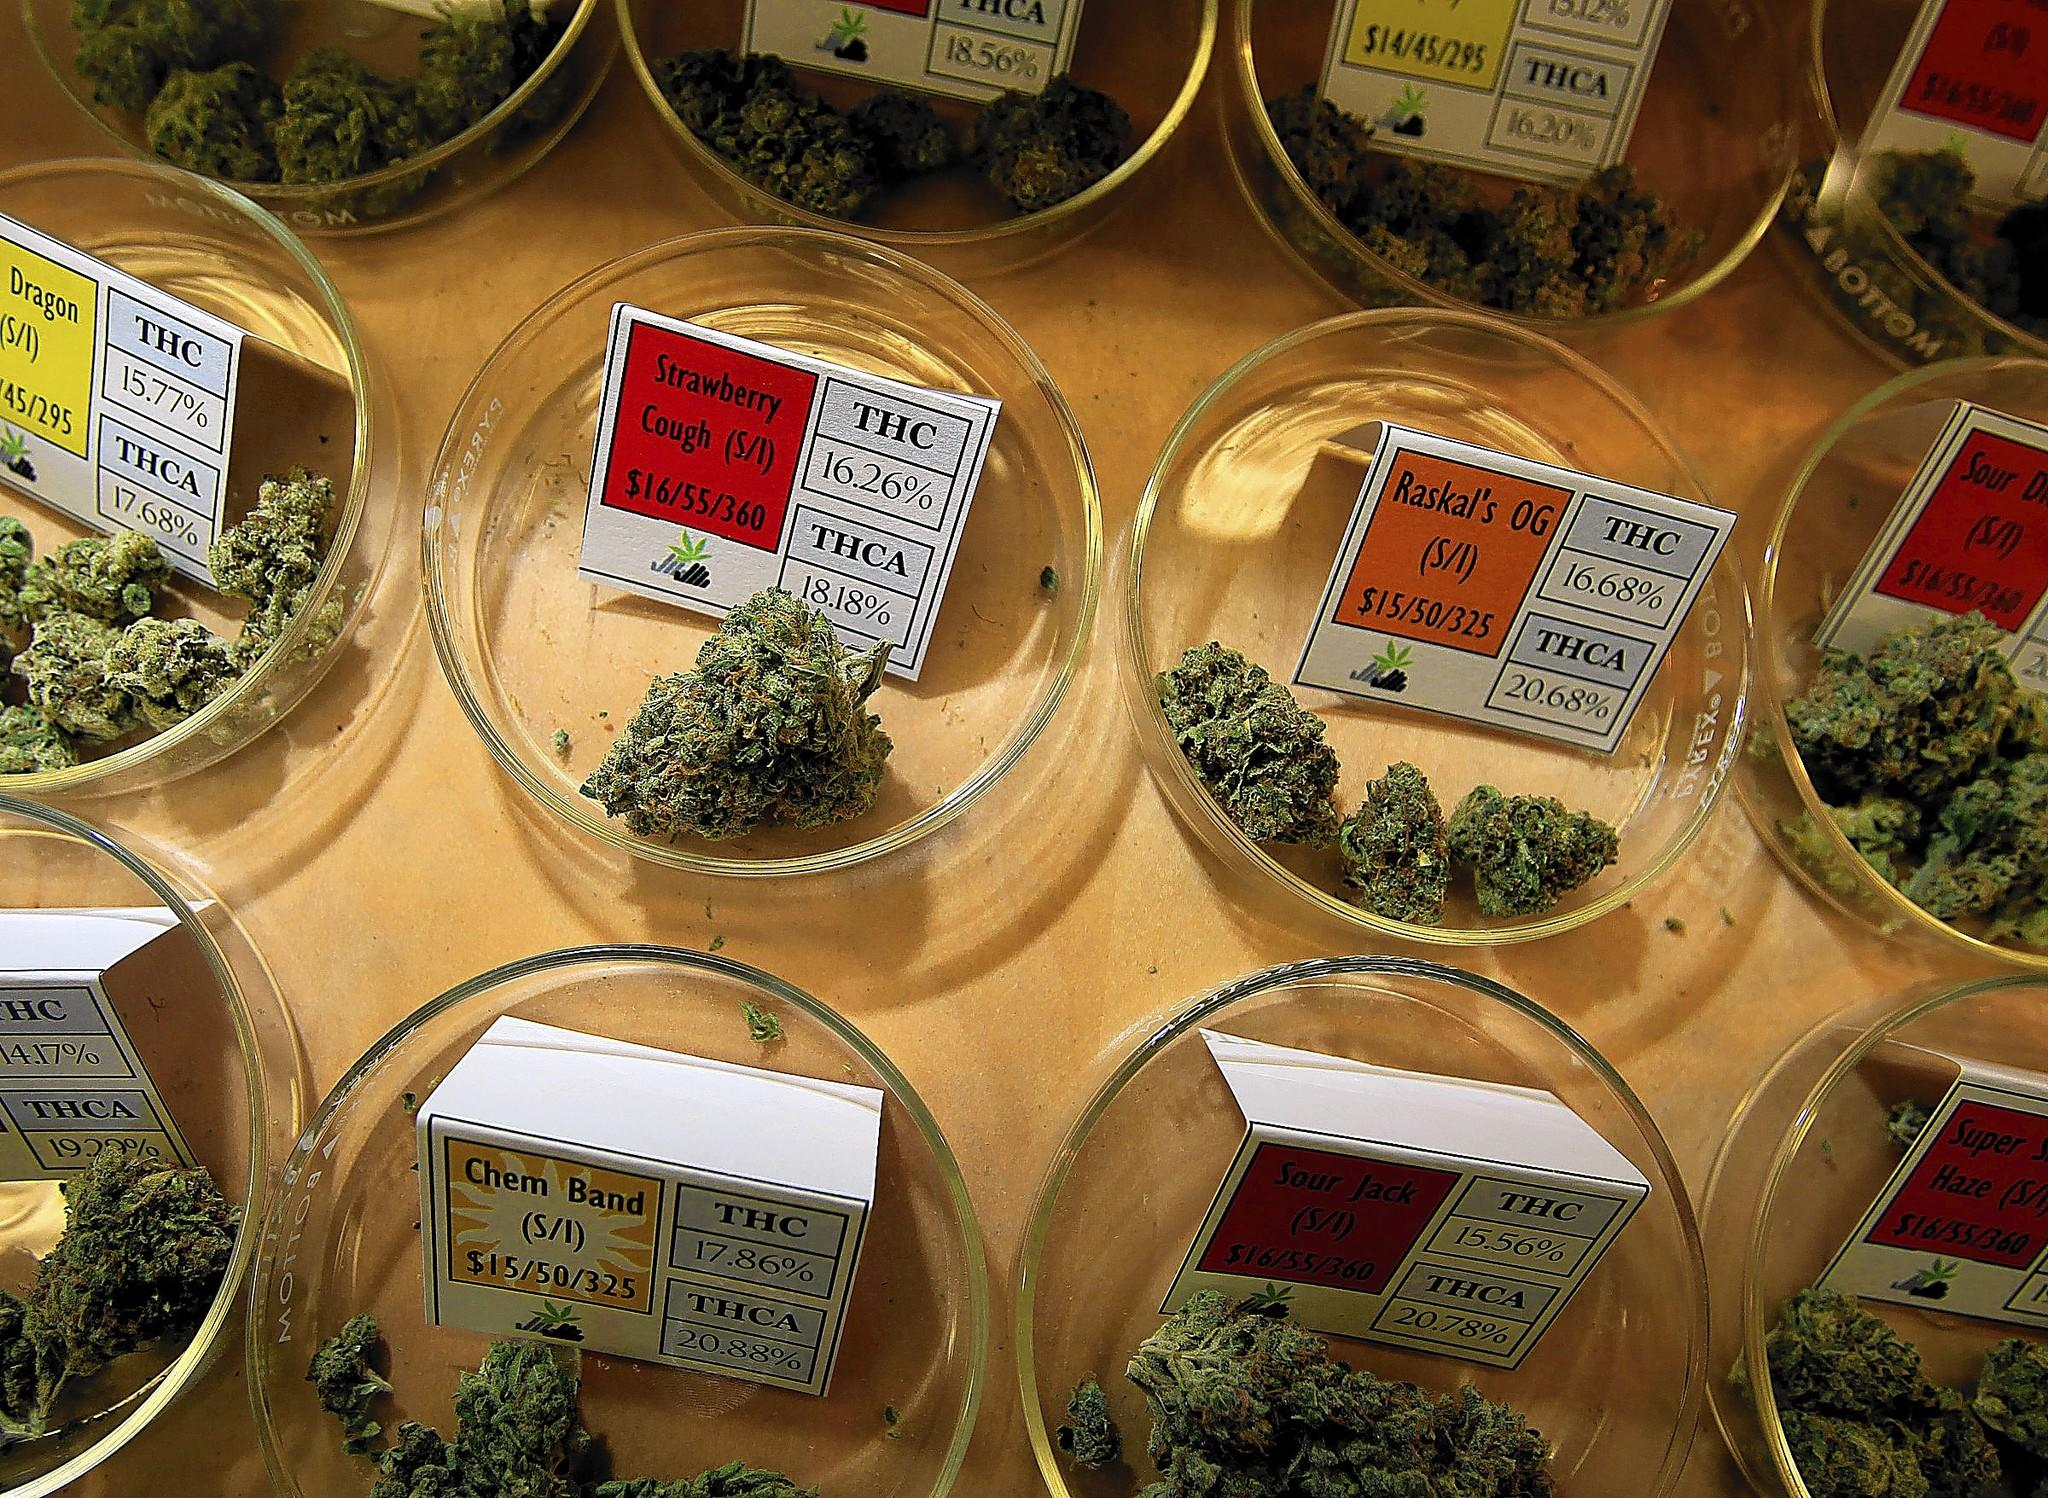 Diferent varieties and strains of marijauna are available for paients at Harborside Health Center, a large medical marijuana dispansary in Oakland, Calif.